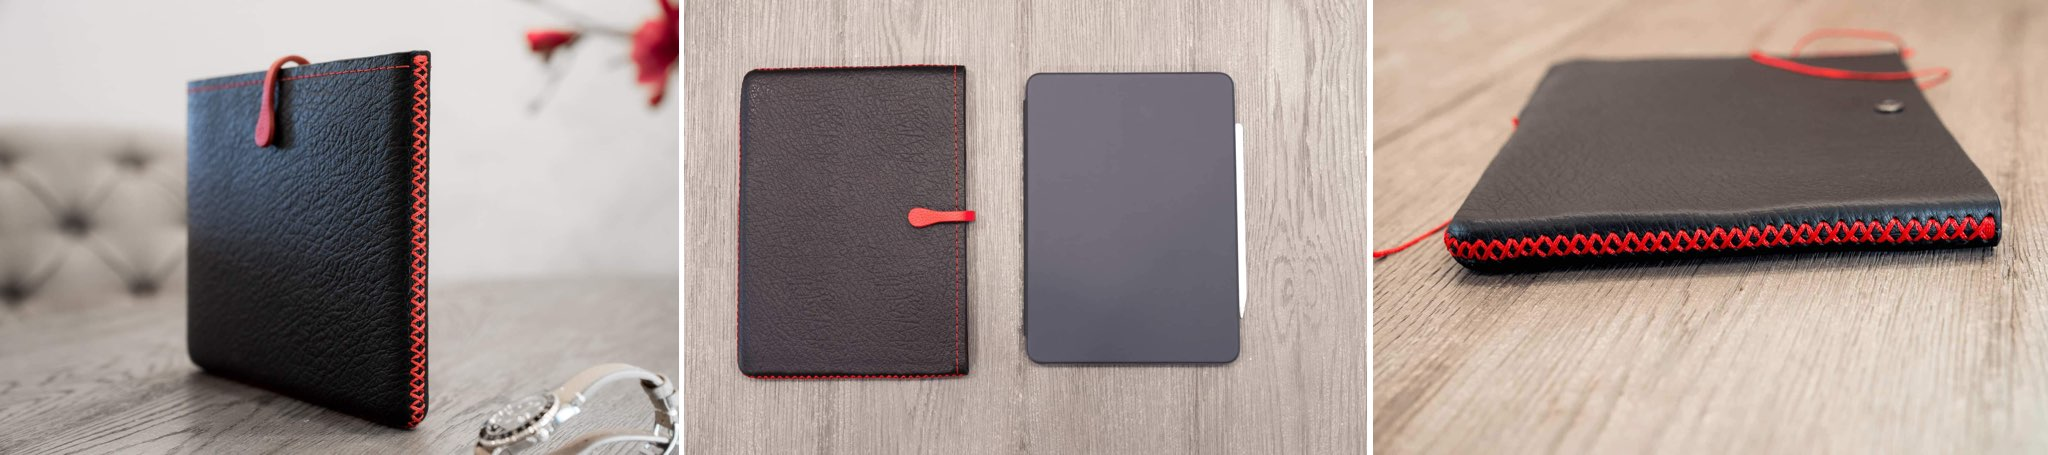 Leather cases iPad - Picaso Lab sleeves for 2018 iPad Pro